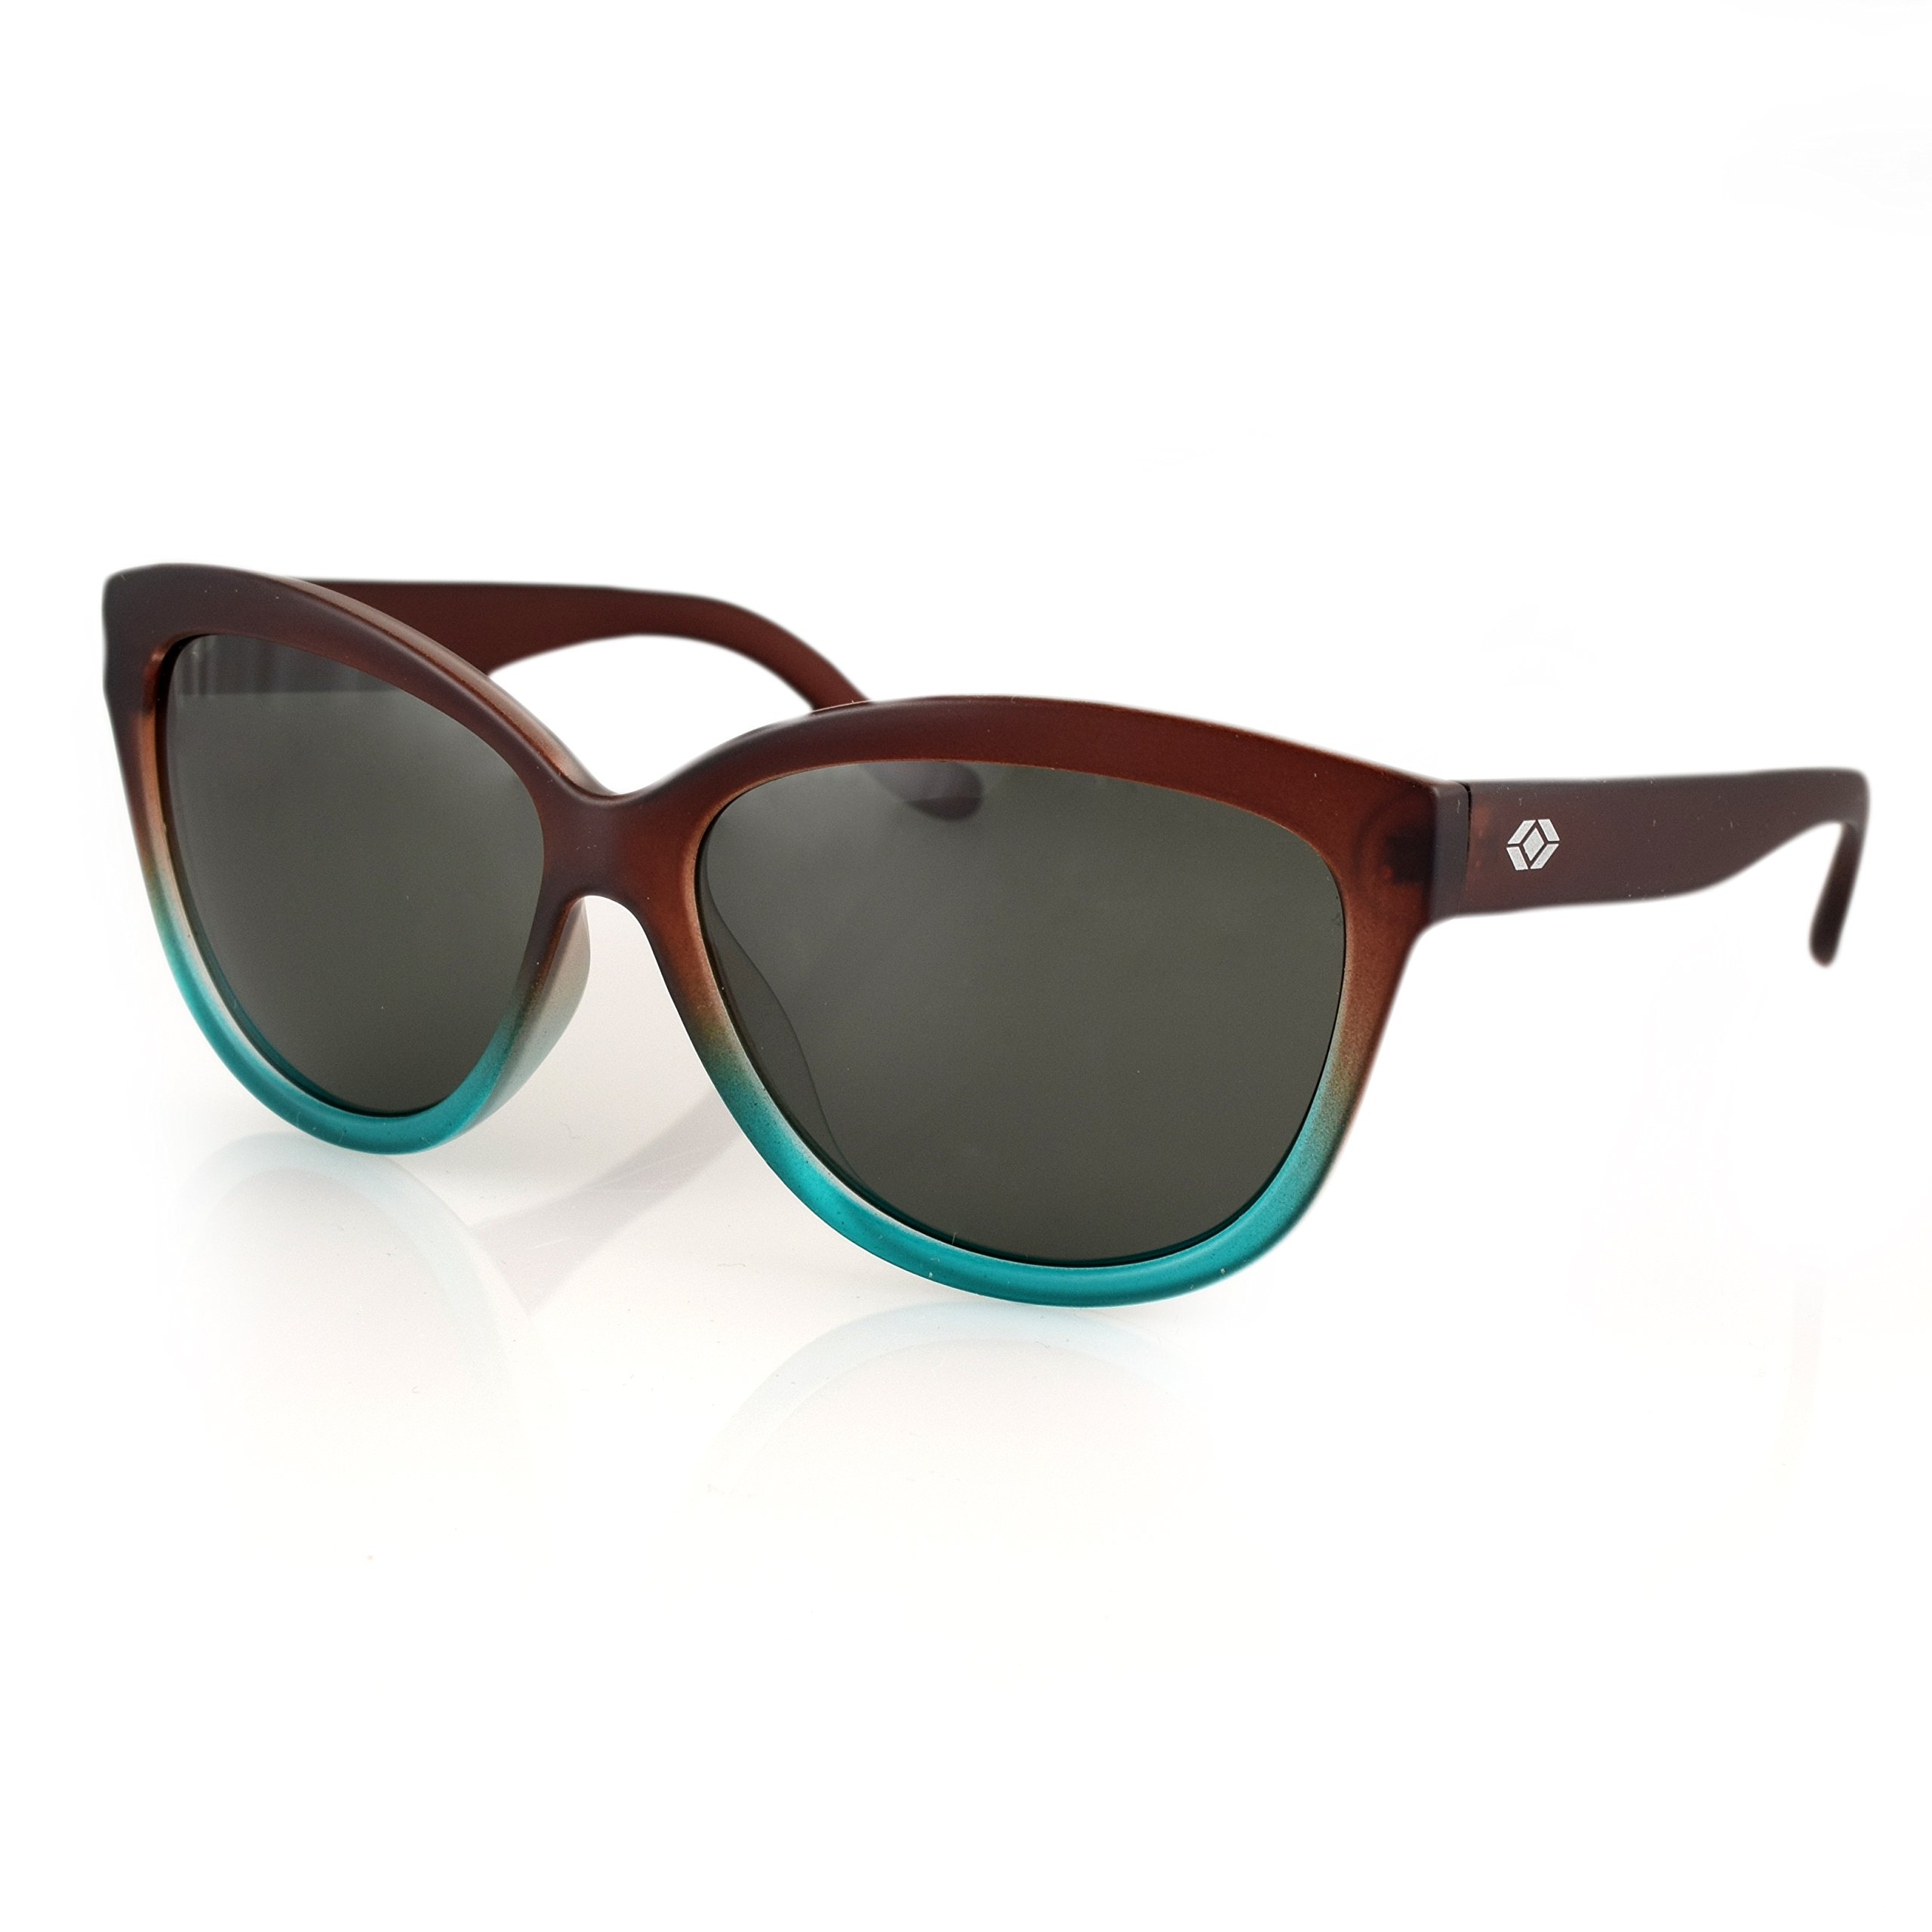 13Fifty Miami Women's Sunglasses, Cat Eye Glasses Brown & Green Fashion Frame, Green Gray Polarized Lenses by 13Fifty (Image #1)